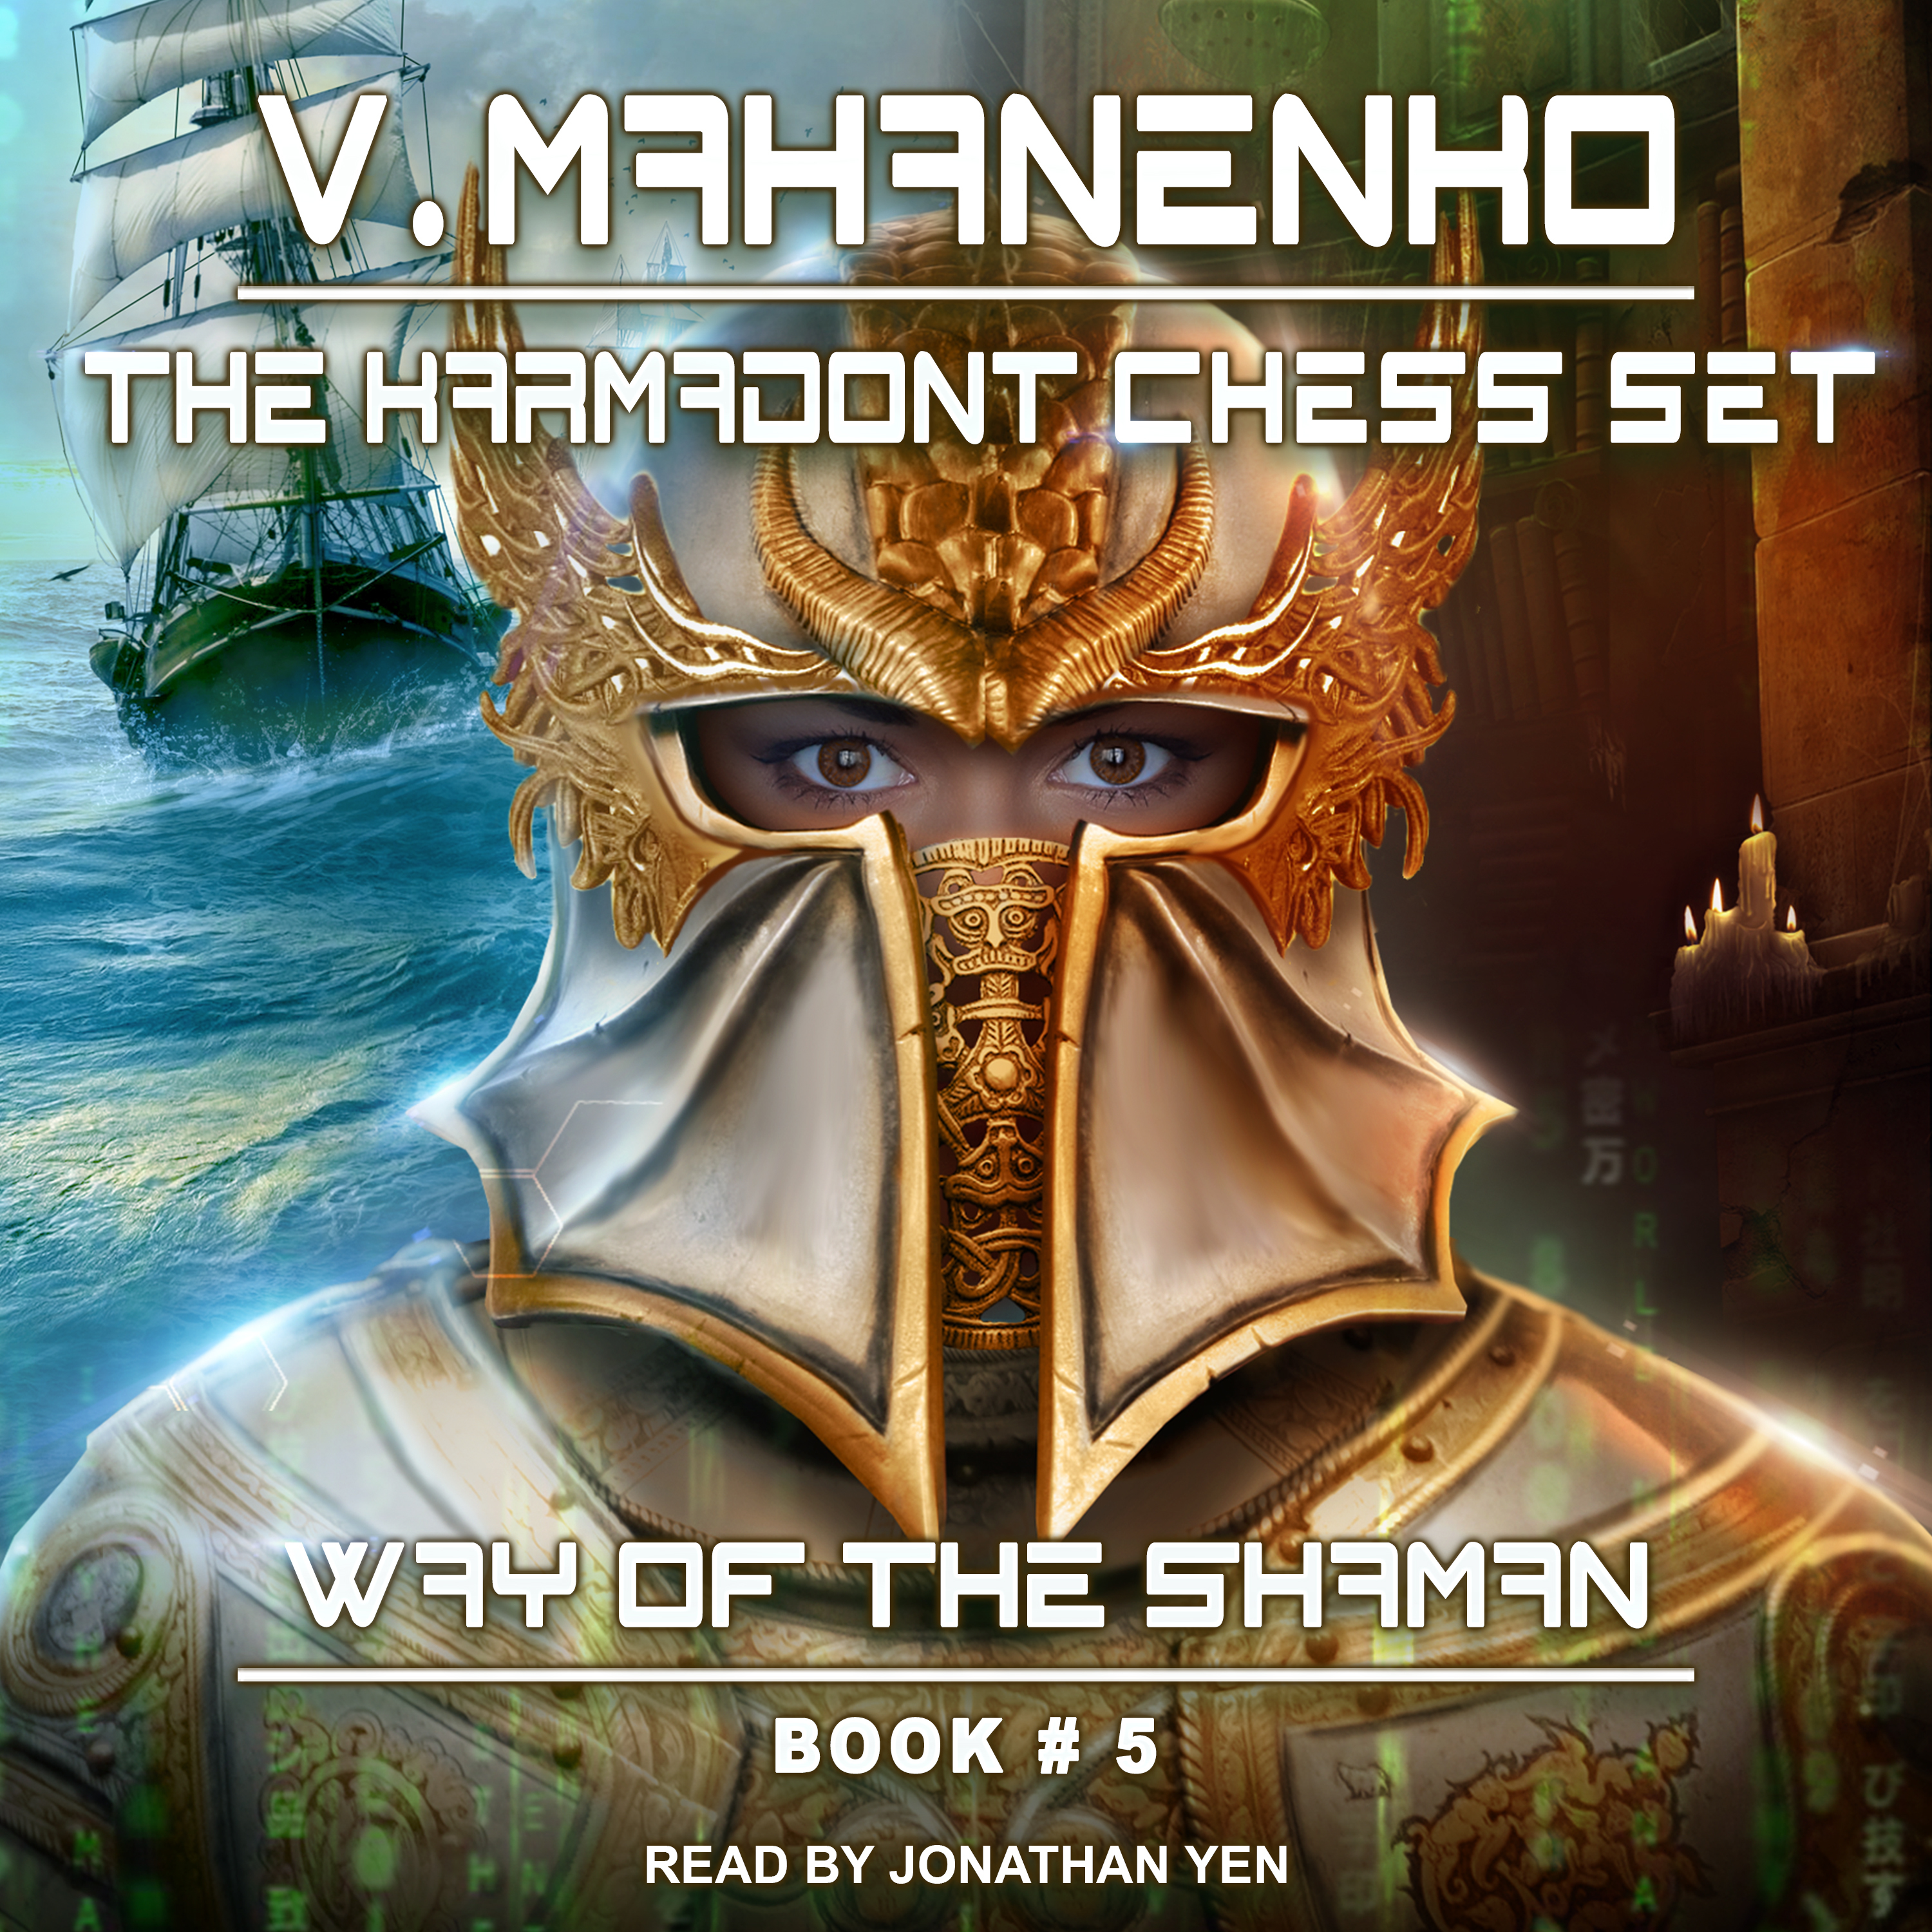 Printable The Karmadont Chess Set Audiobook Cover Art